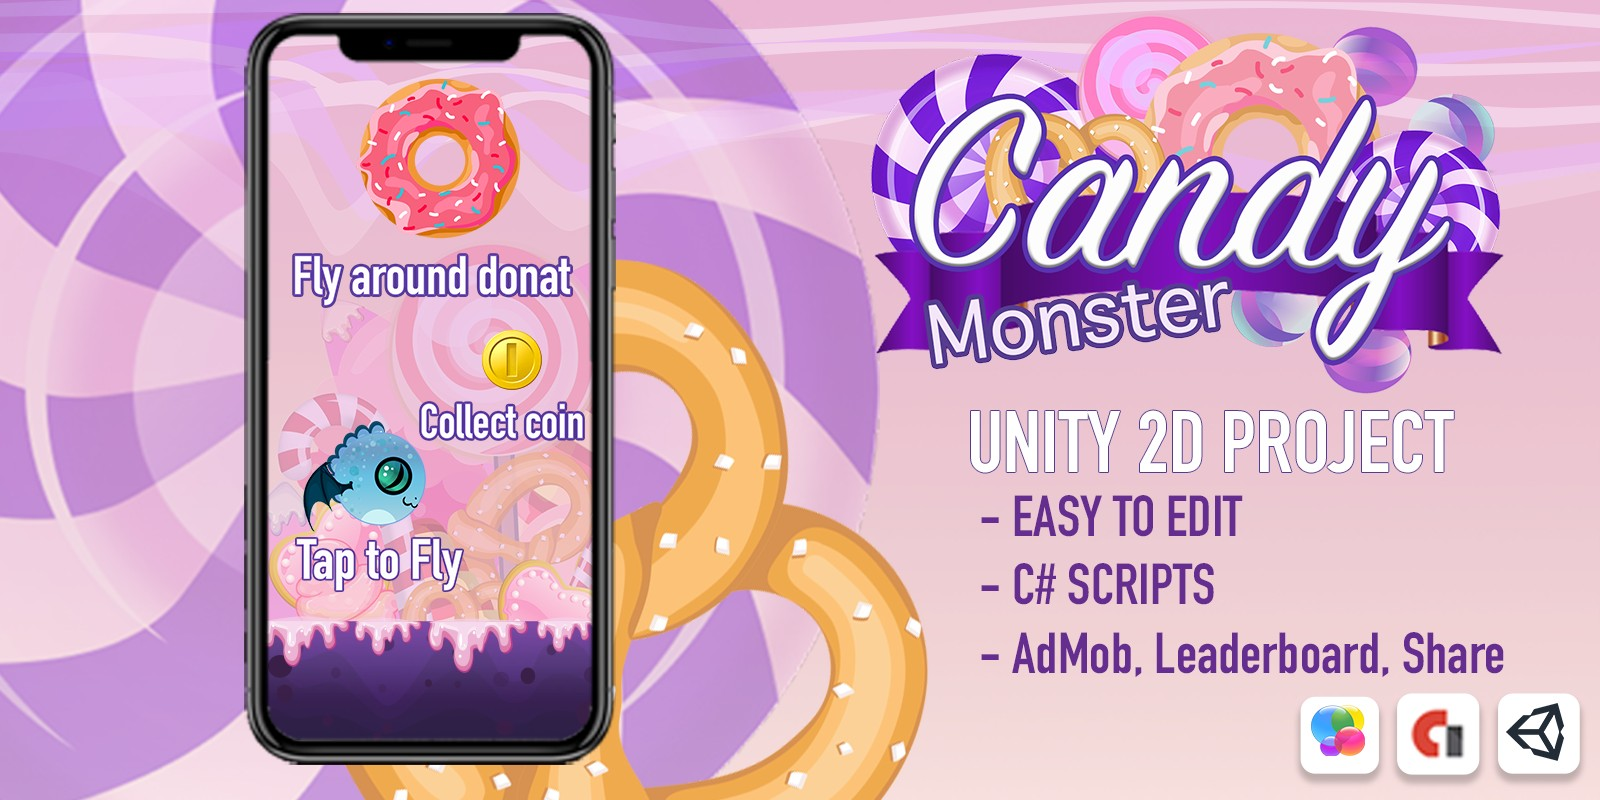 Candy Monster - Complete Unity Project